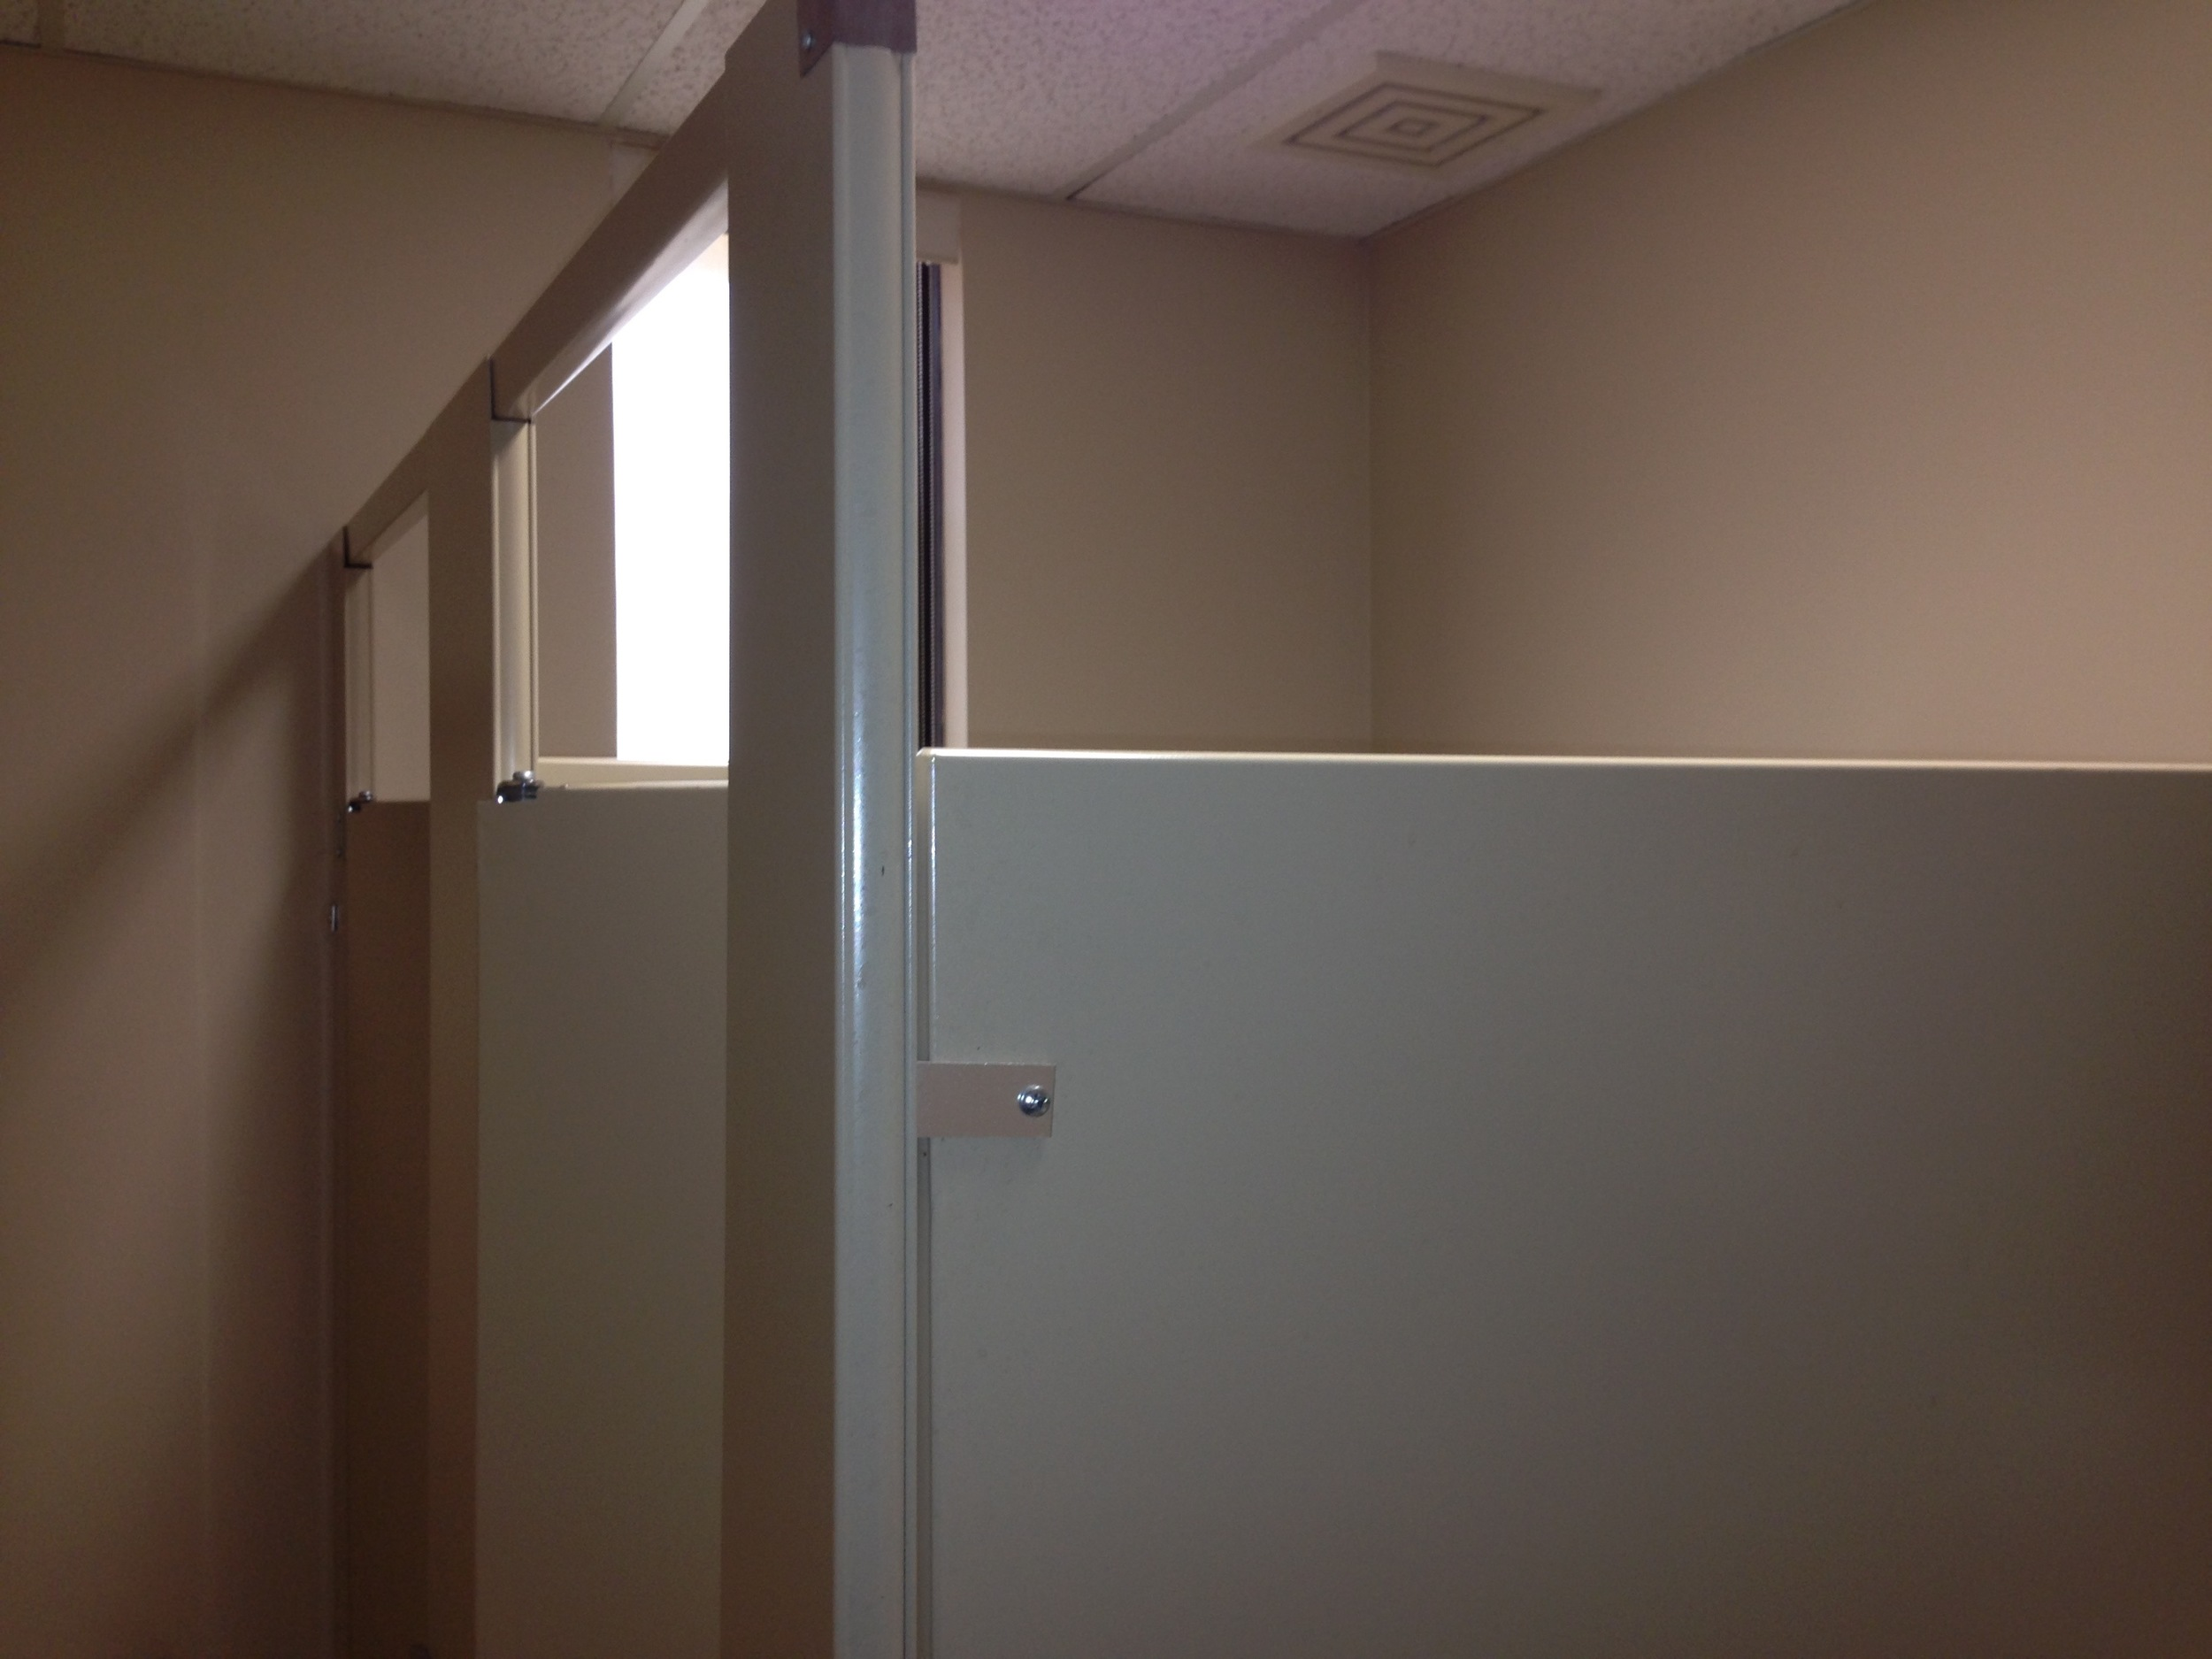 PS01  Partition Systems - General Contractors Commercial Renovations in Edmonton, Office and Warehouse Project Contractors